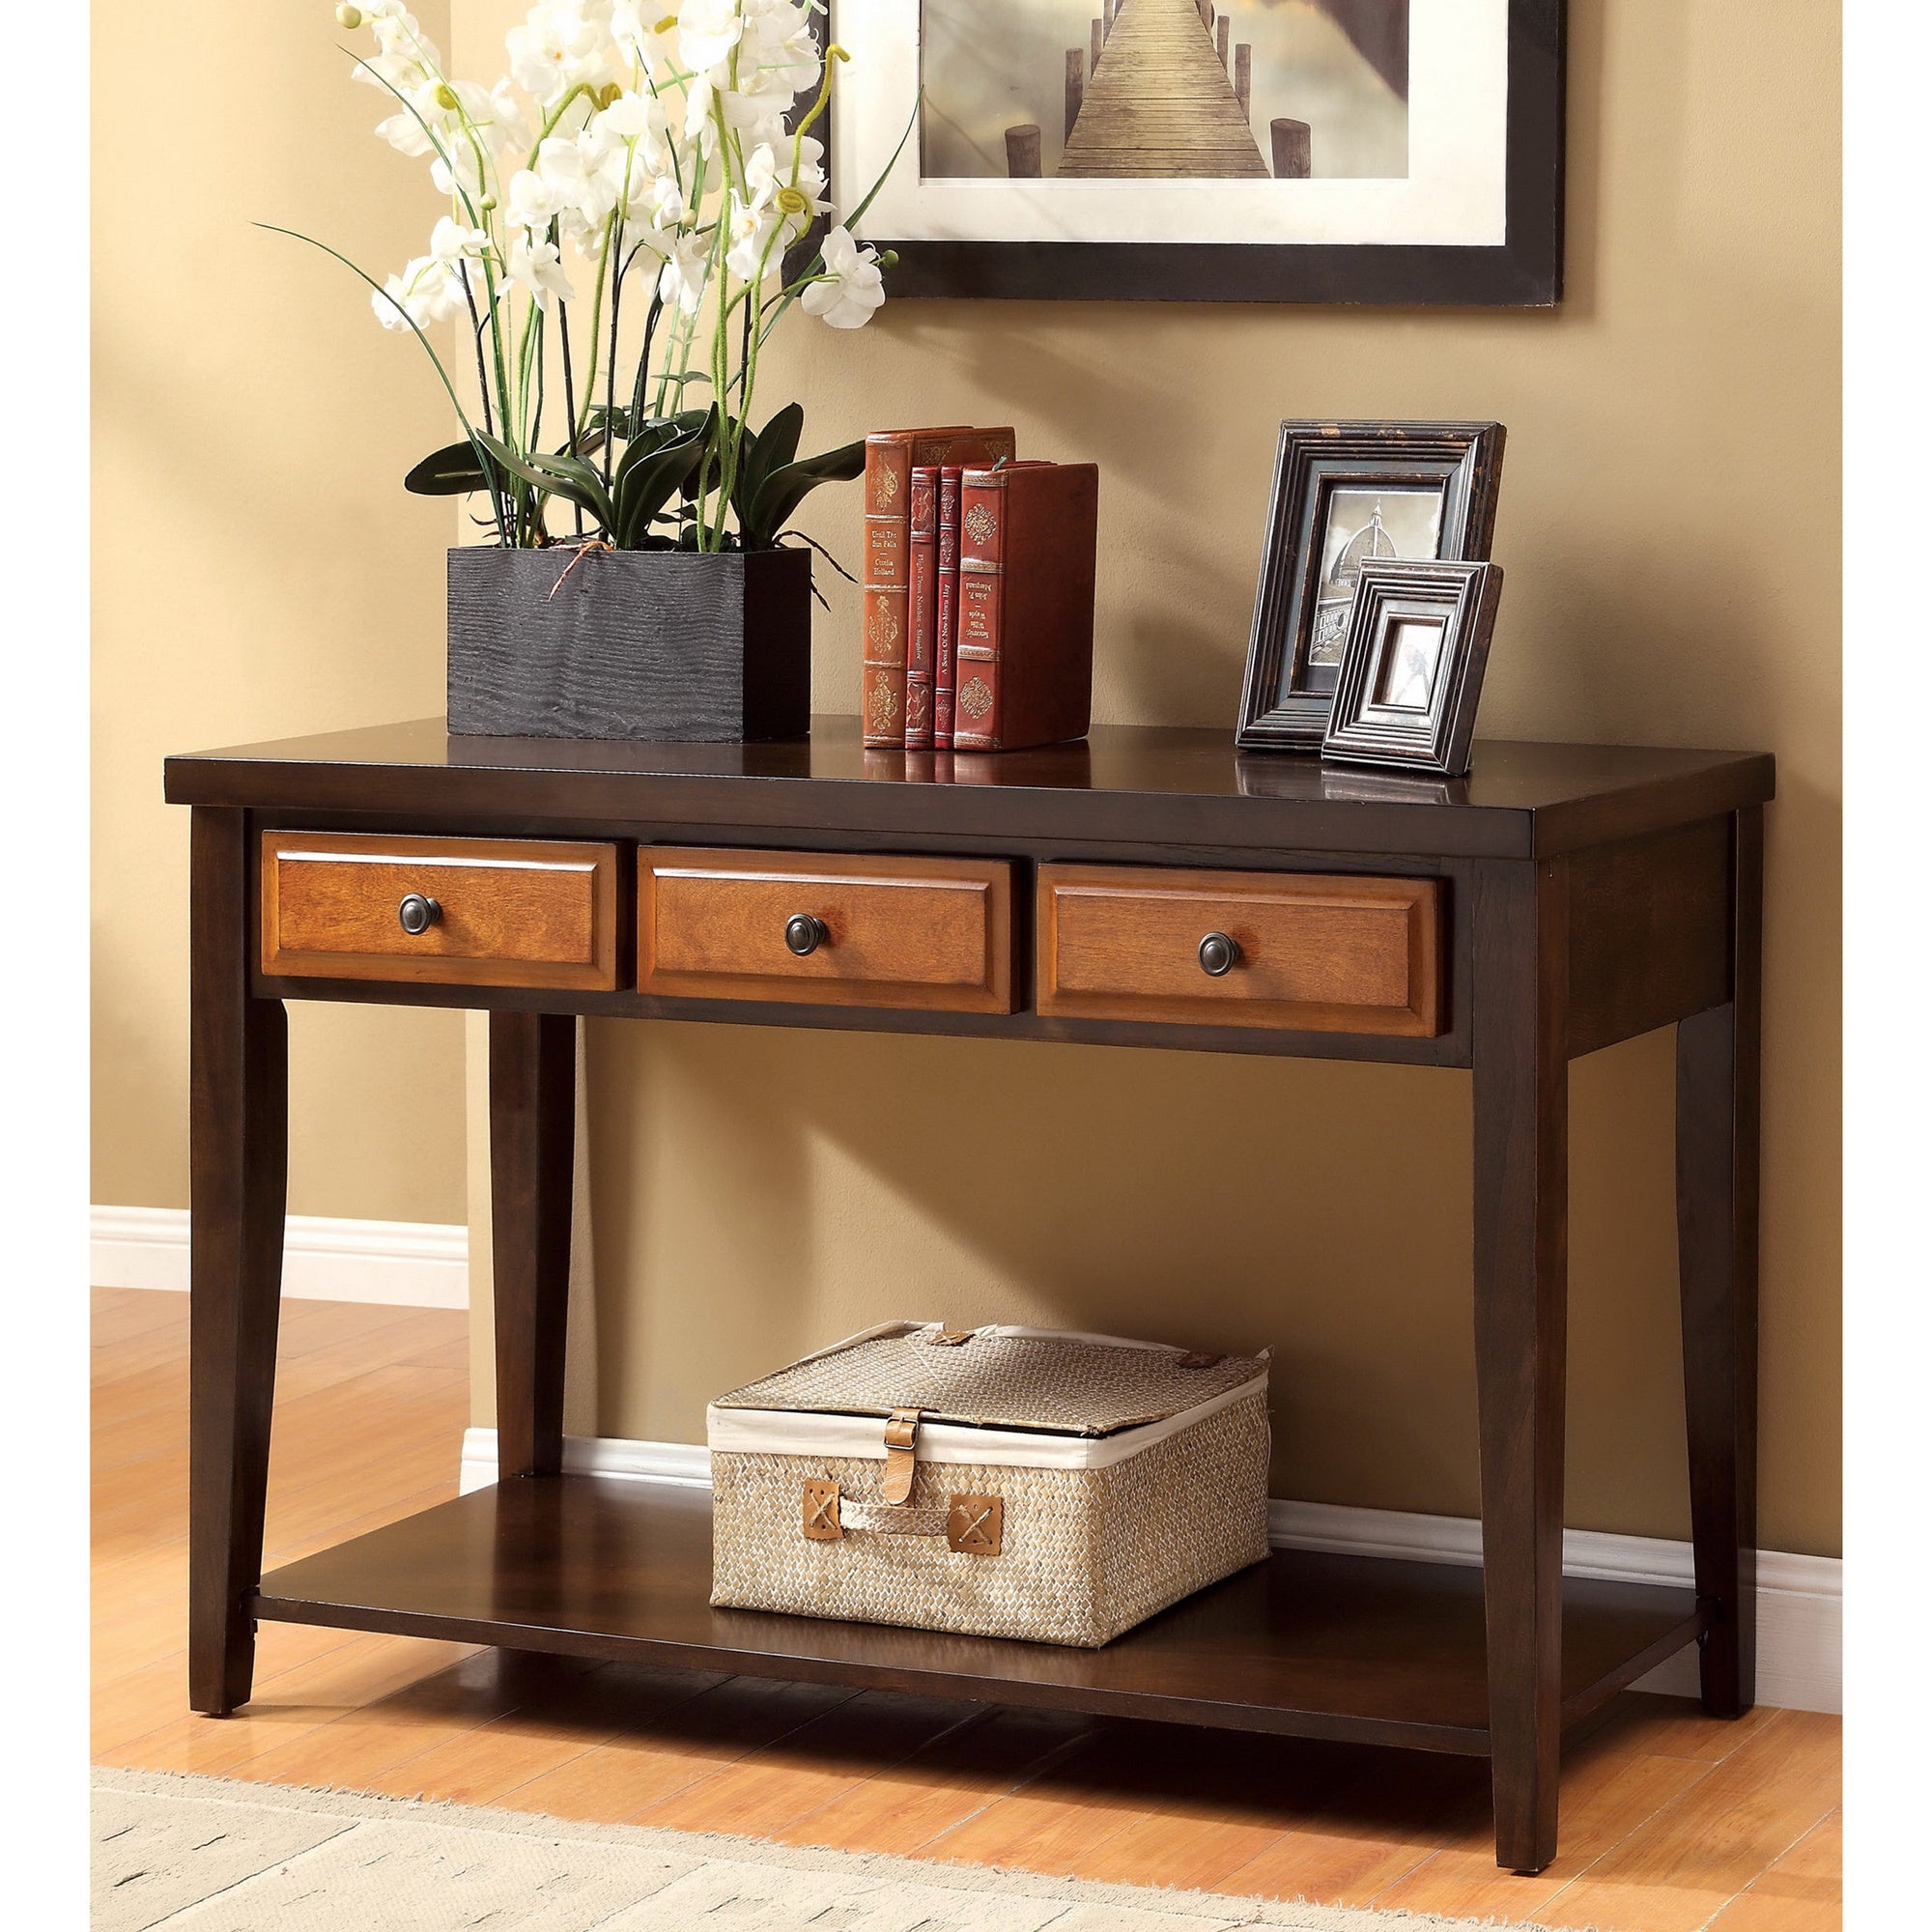 Dark Oak & Cherry Sente Transitional 3 Storage Drawer Console Table . Full resolution‎  image, nominally Width 2000 Height 2000 pixels, image with #A47727.